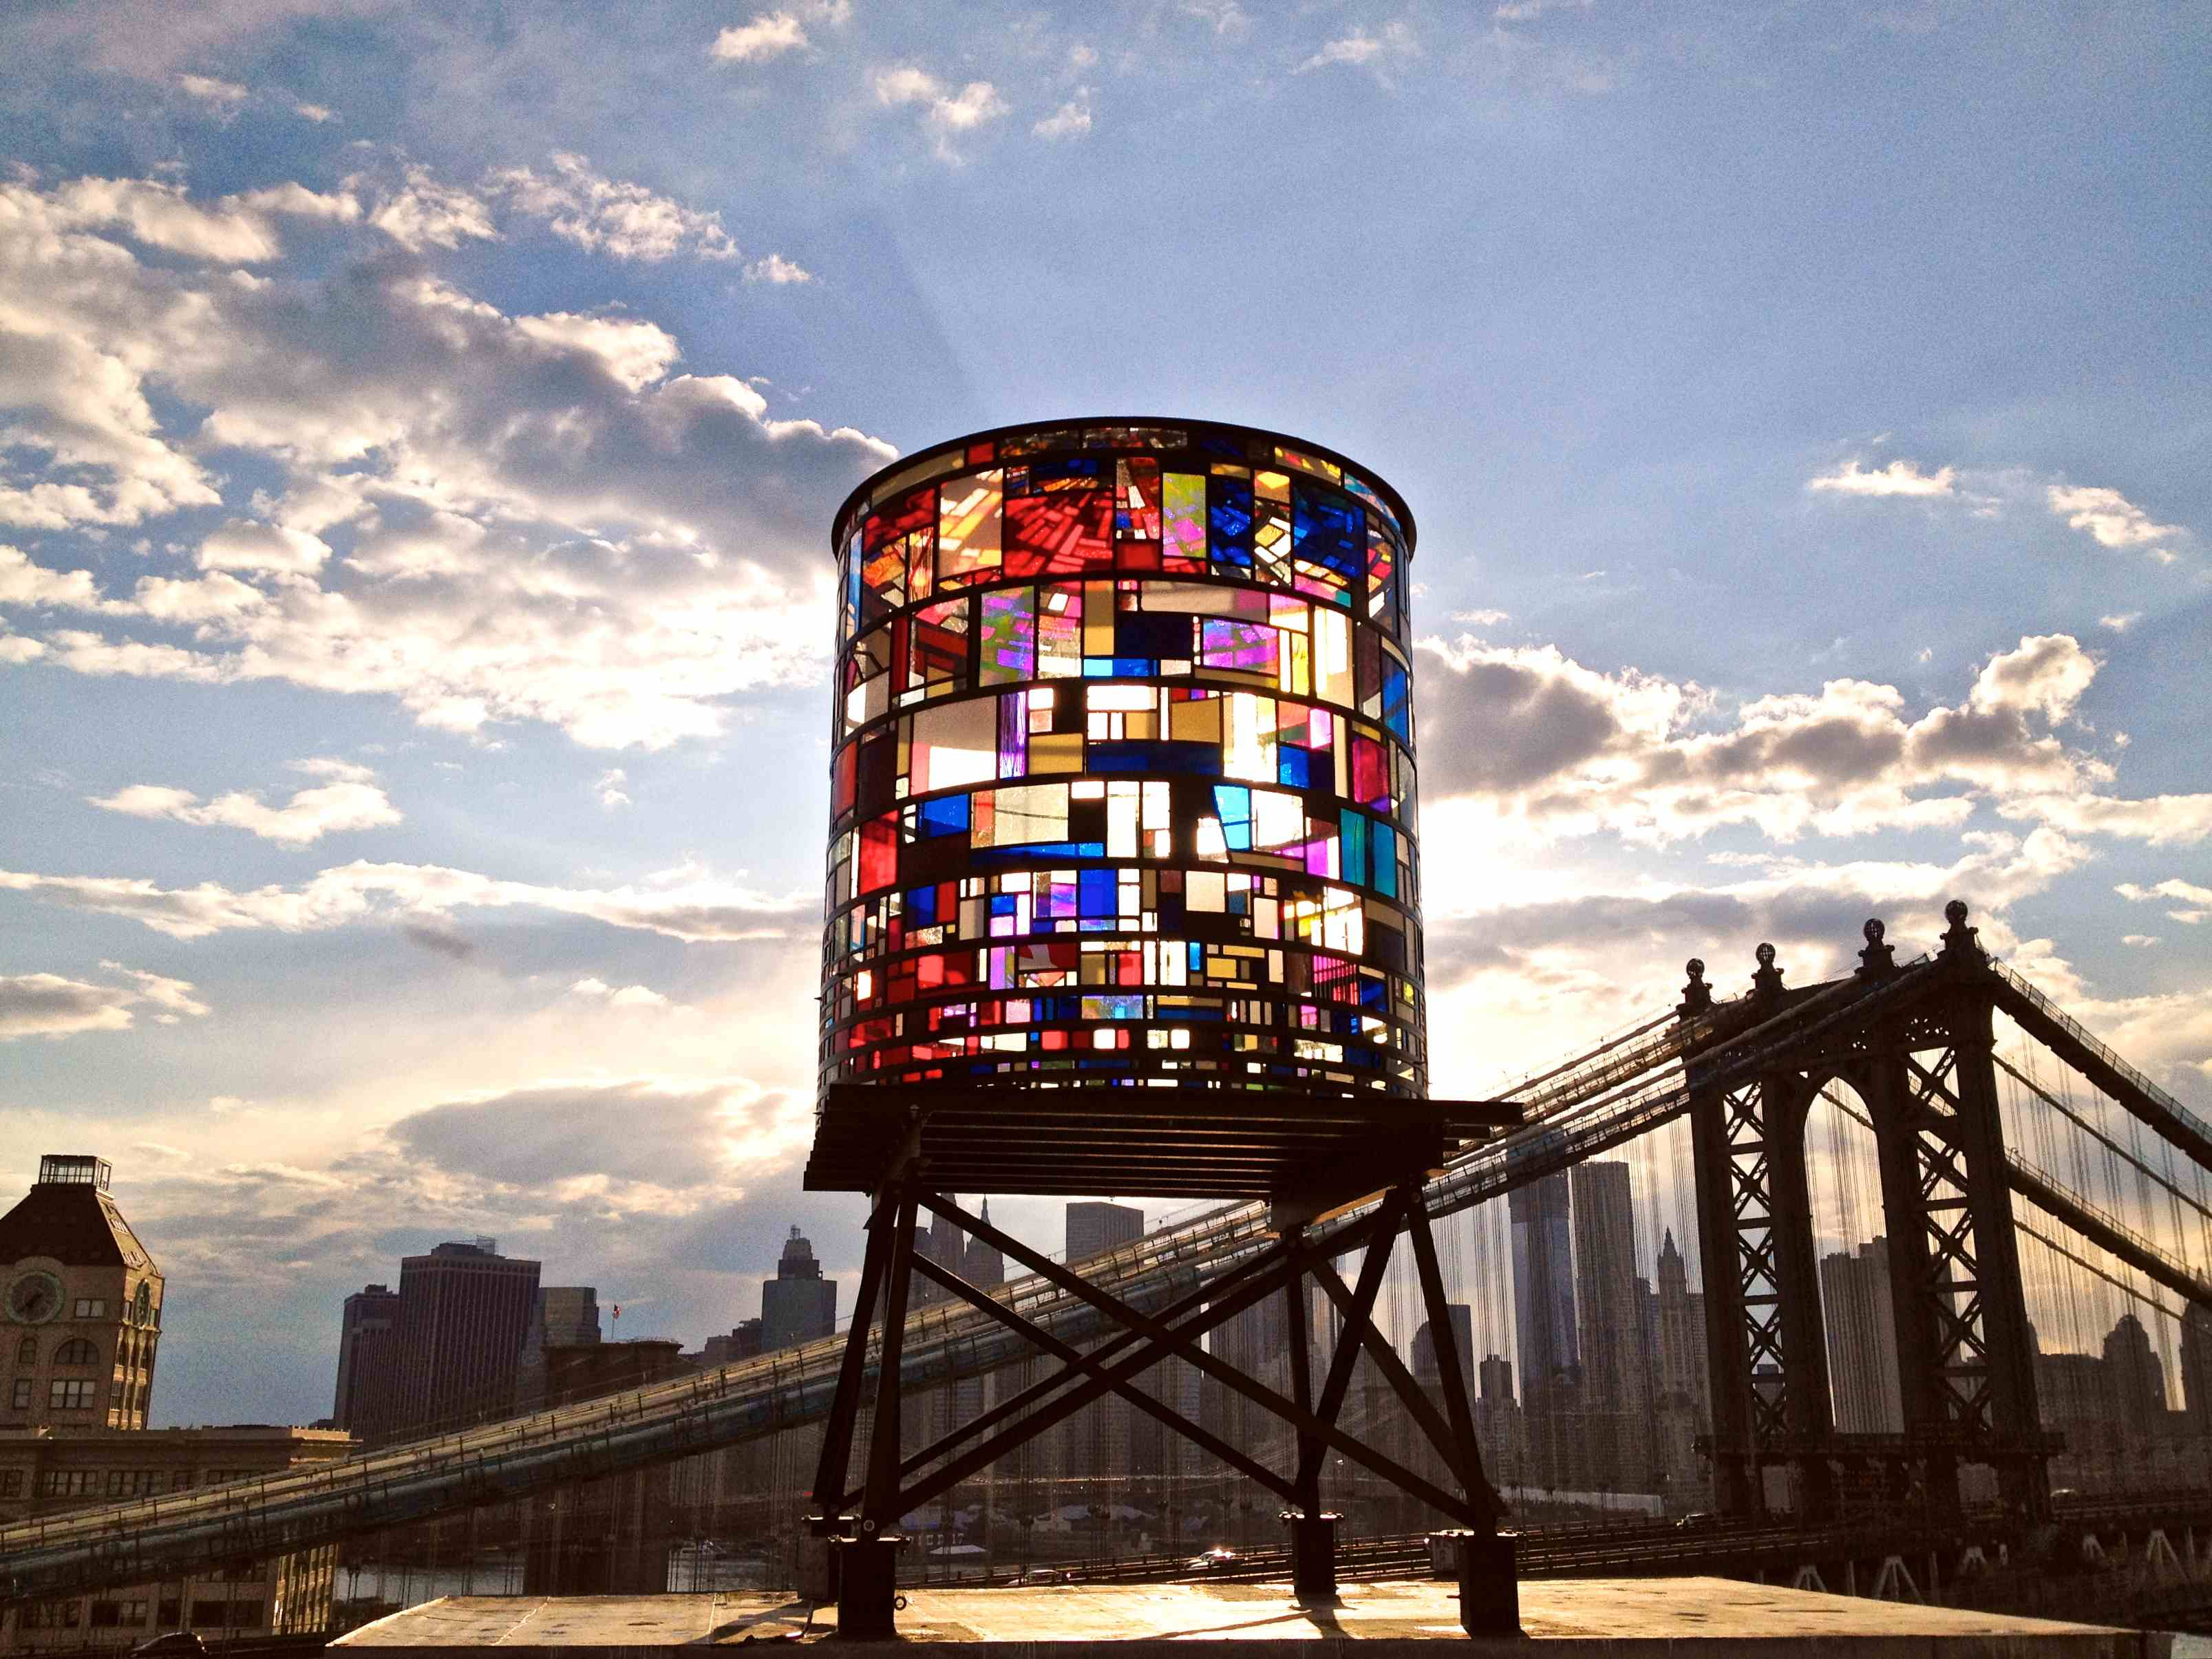 Artists Transform New York City39s Water Towers Into Works